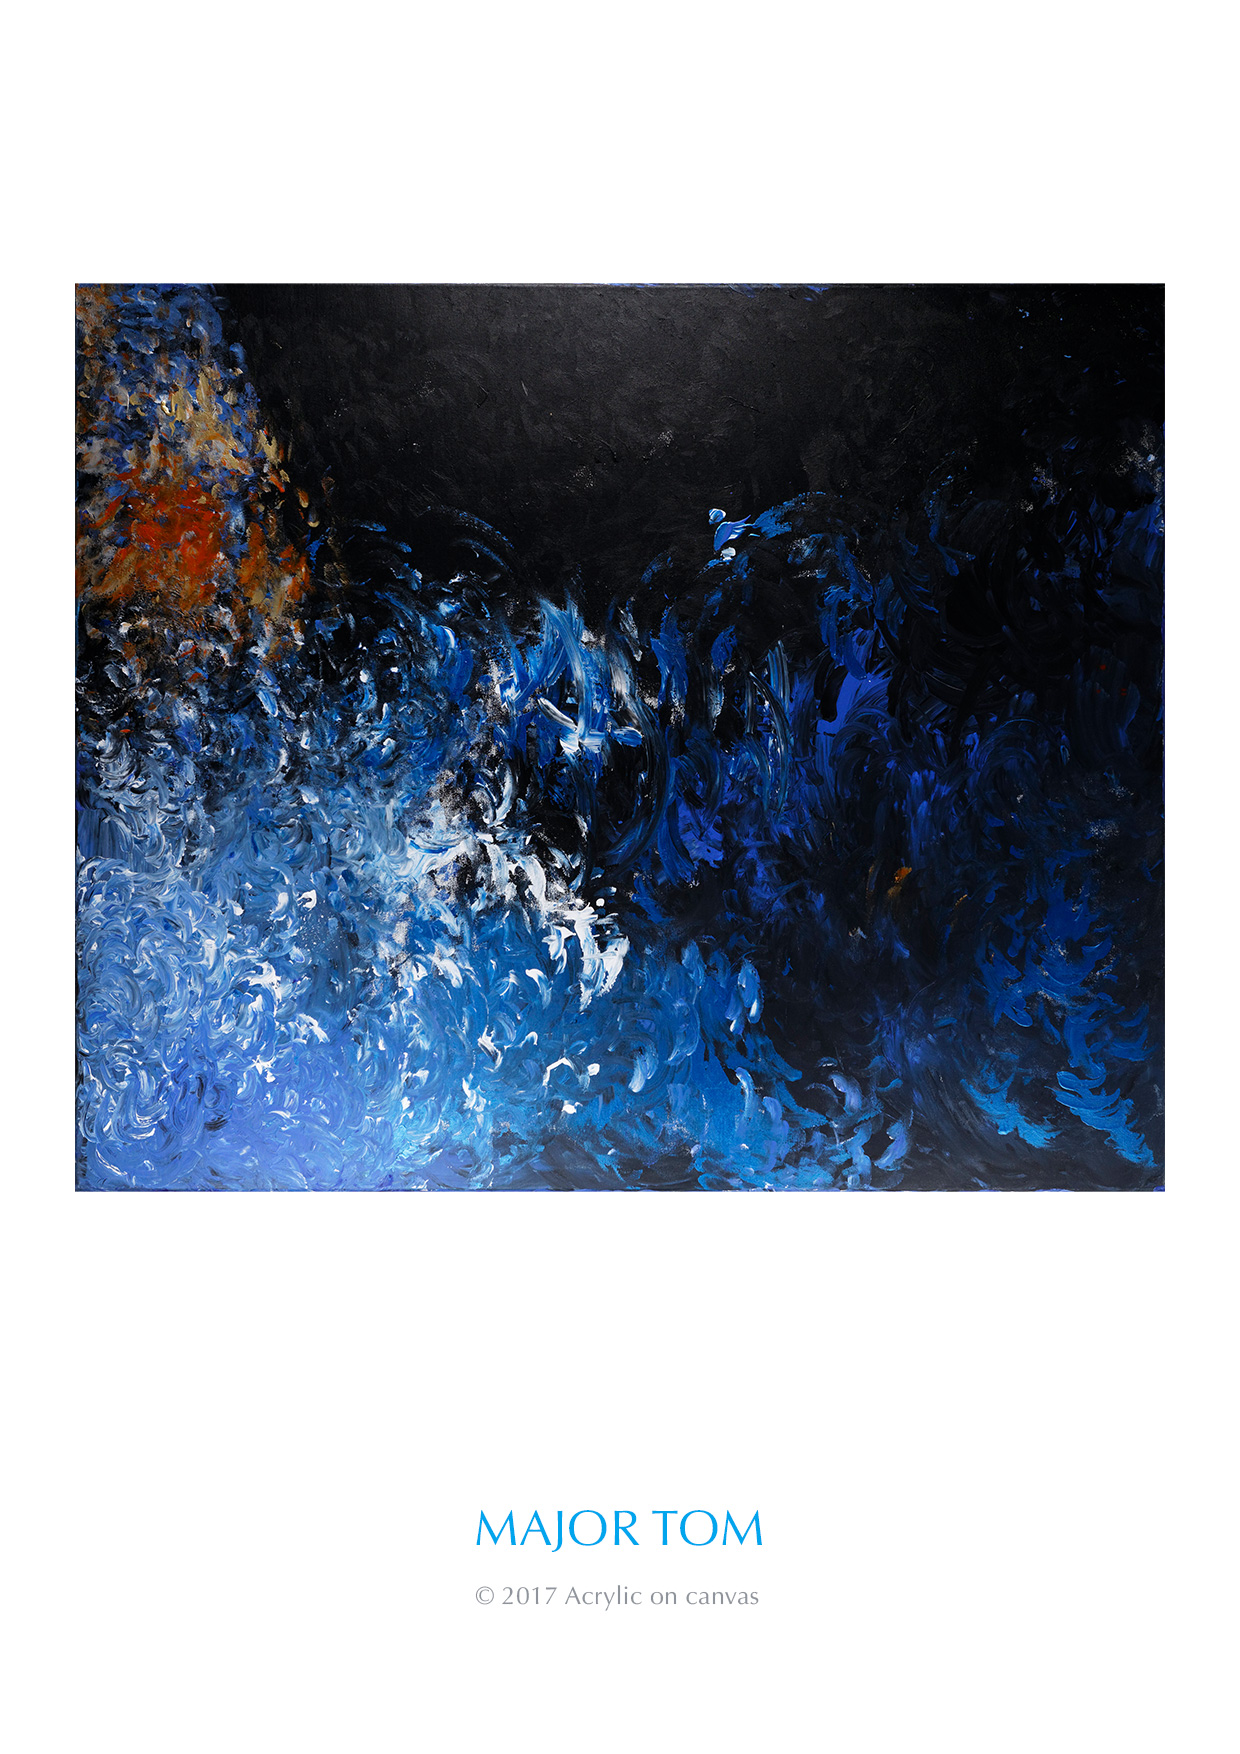 """Major Tom. This is the horizontal perspective of """"Extreme Obligations"""". Some people see an astronaut with a helmet on sitting on an asteroid out in the blackness of space with shades of blue and white making up the asteroid."""